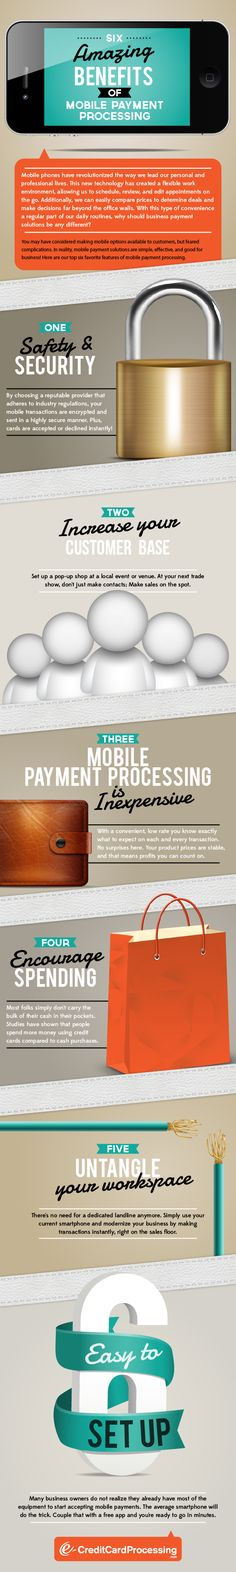 6 Benefits of Mobile Payment Processing - Infographic